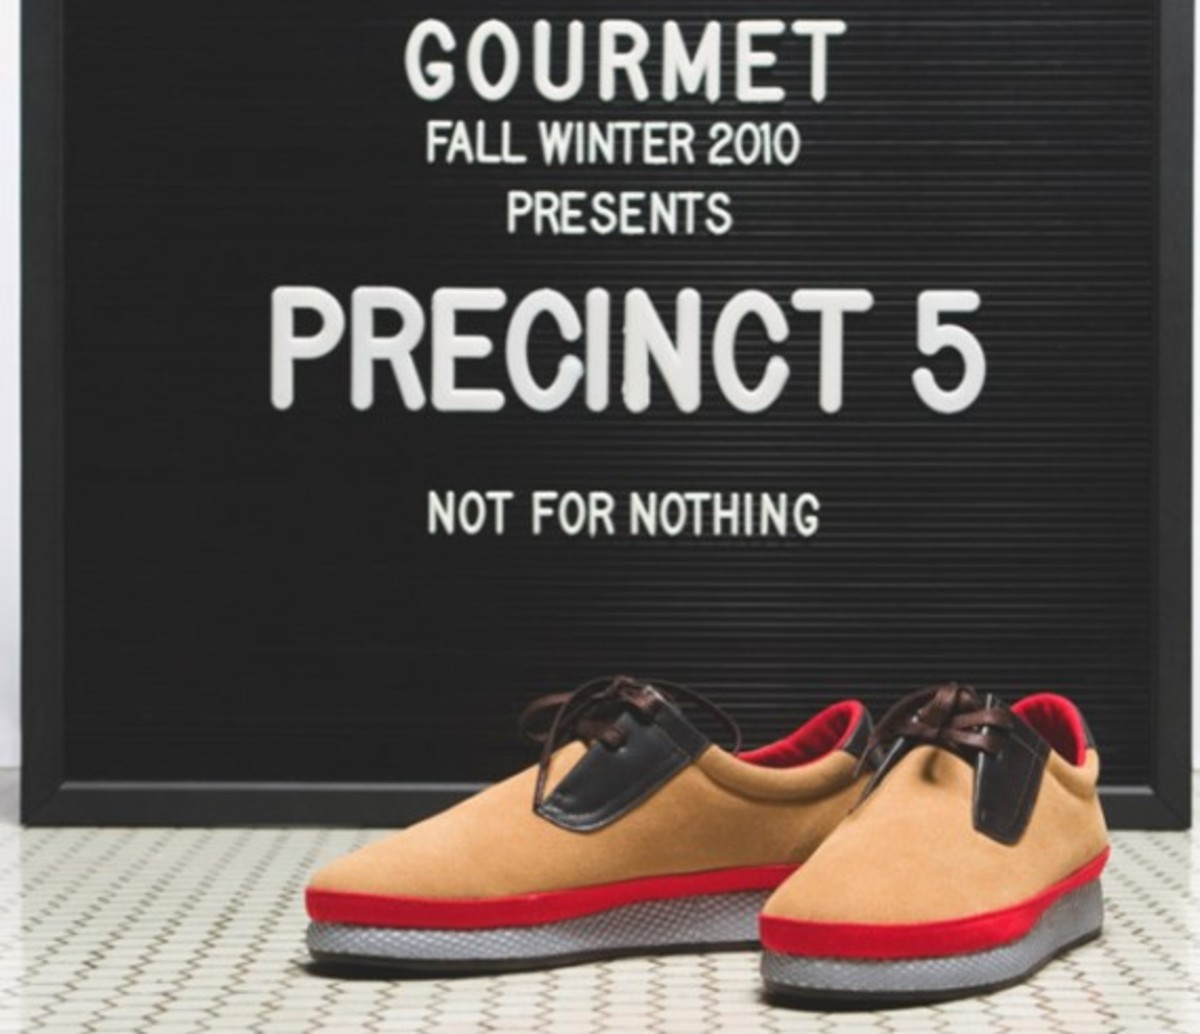 gourmet-2010-fall-winter-collection-02-570x491